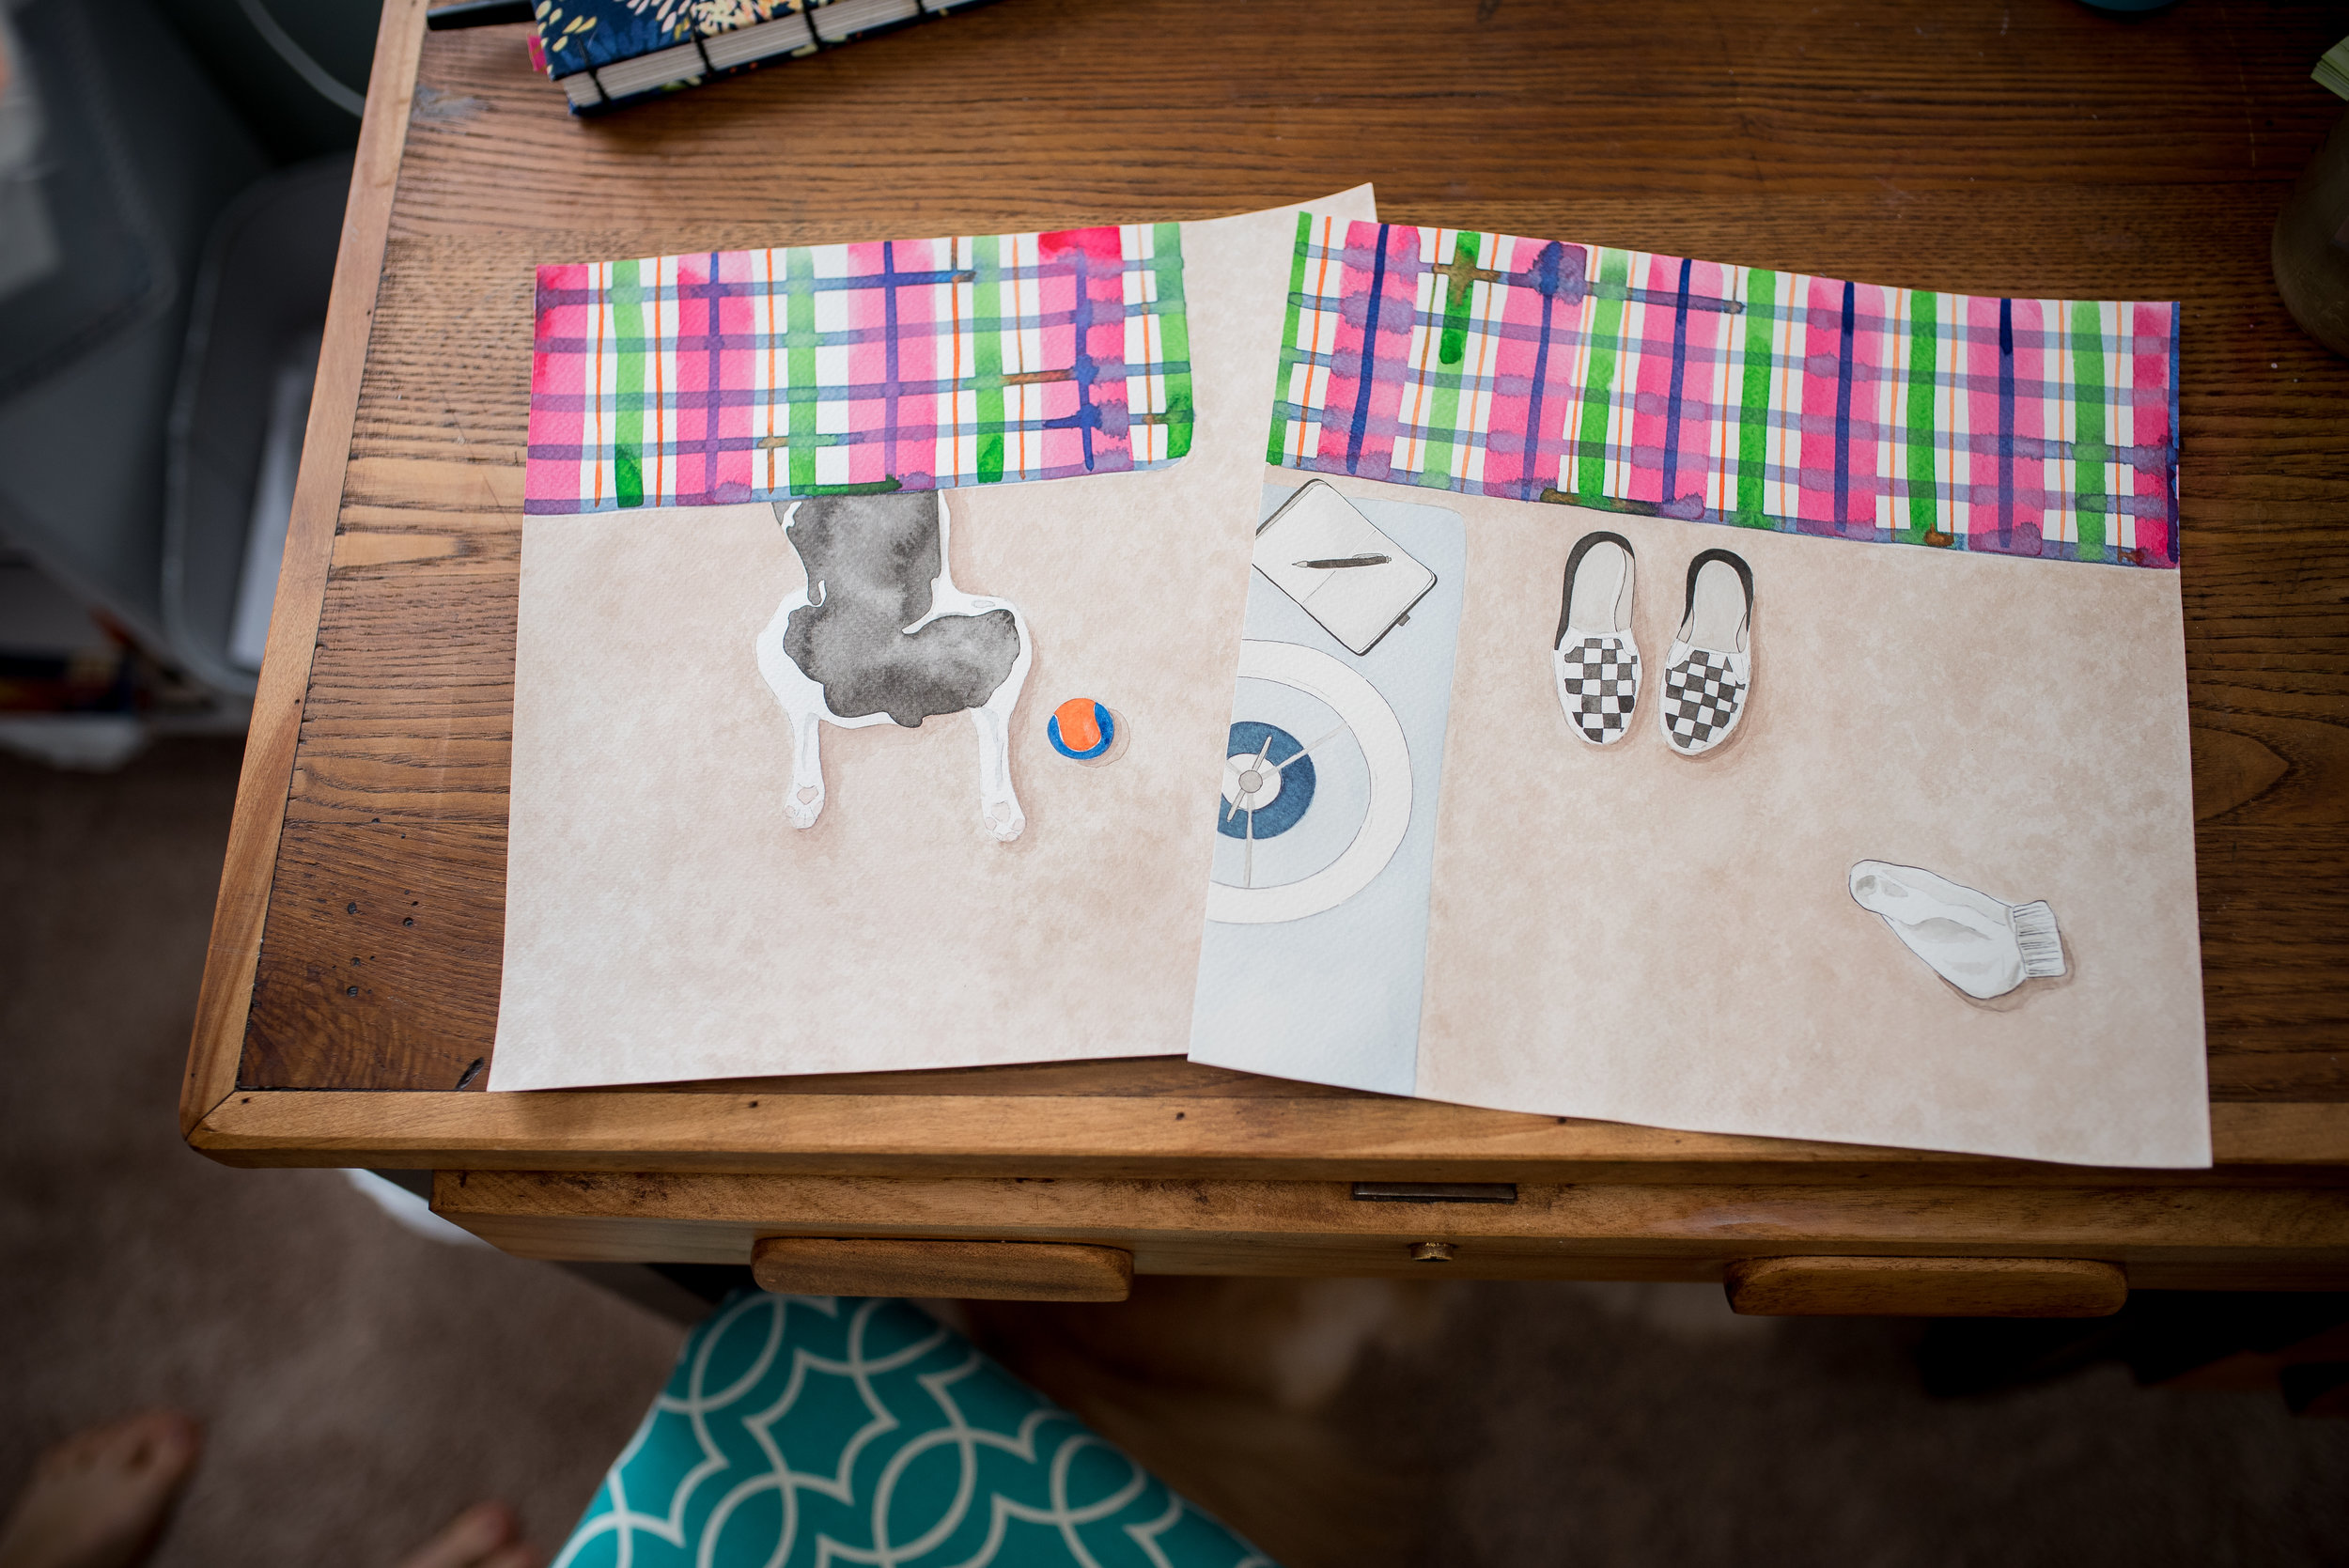 Illustrations for a children's book Amy is working on.